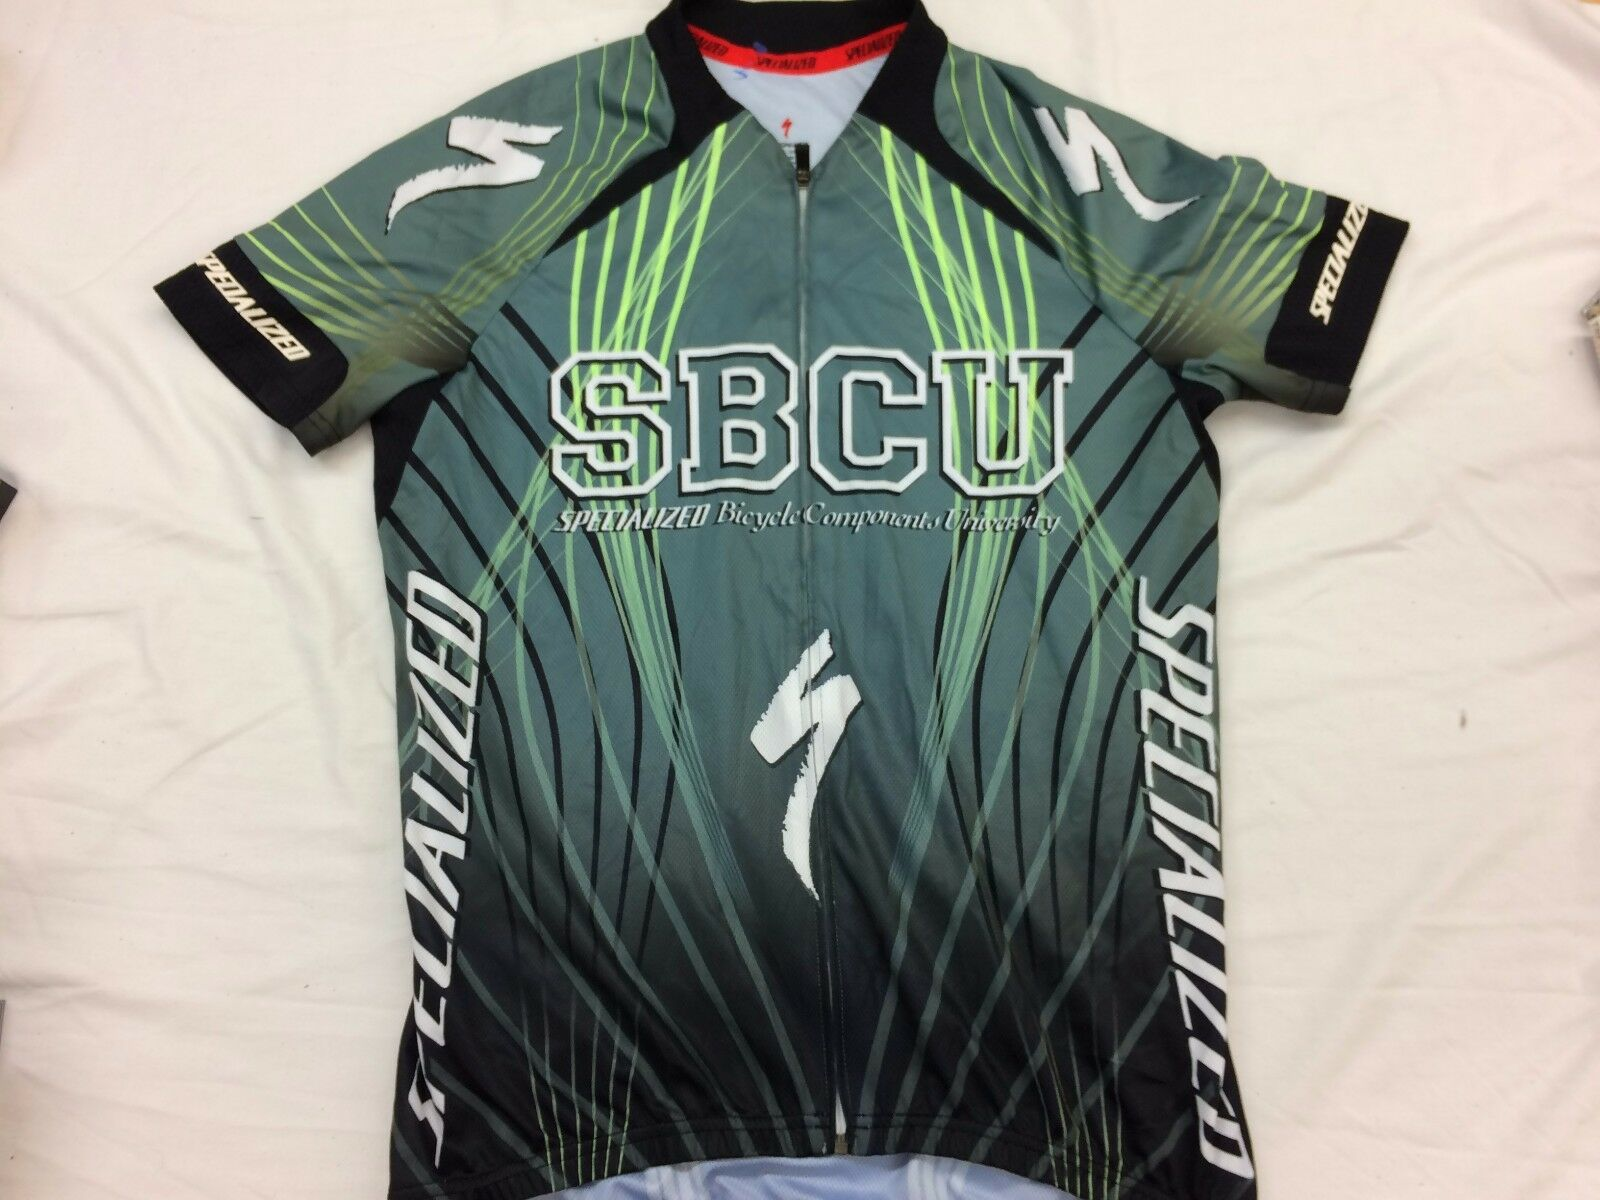 Cycling  Specialized Components University Jersey Racing Mens Adult L  the cheapest